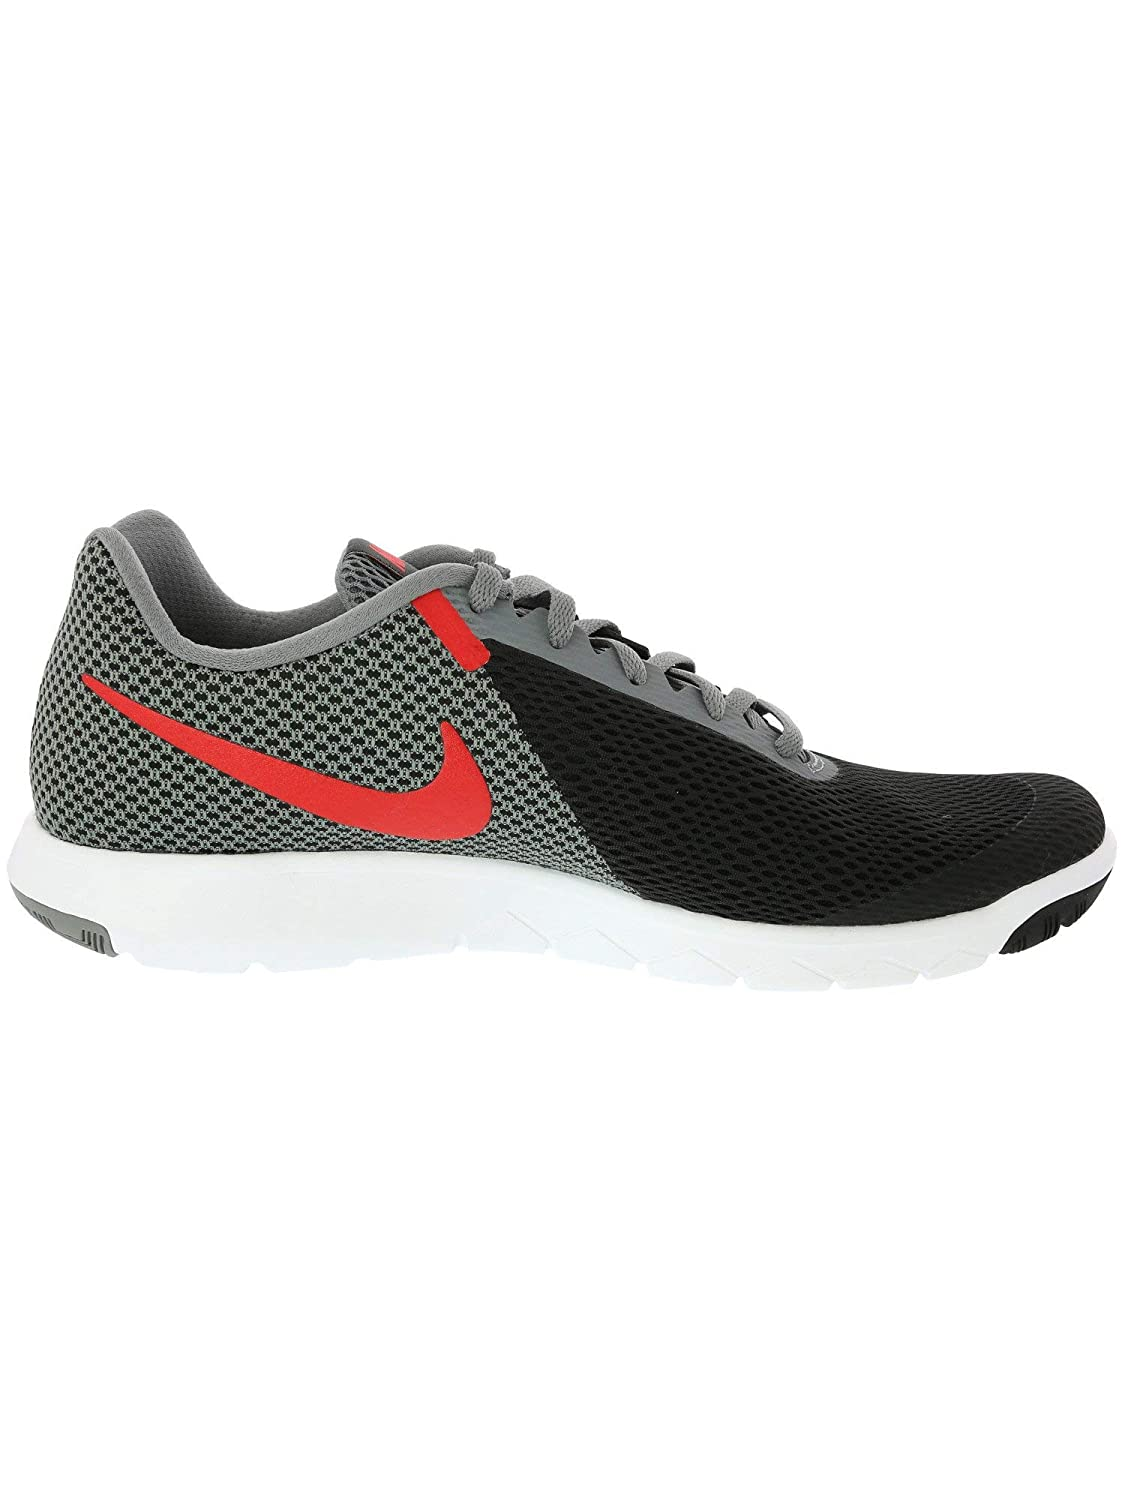 competitive price 471e4 4c53c Amazon.com   NIKE Men s Flex Experience RN 6 Running Shoes   Road Running